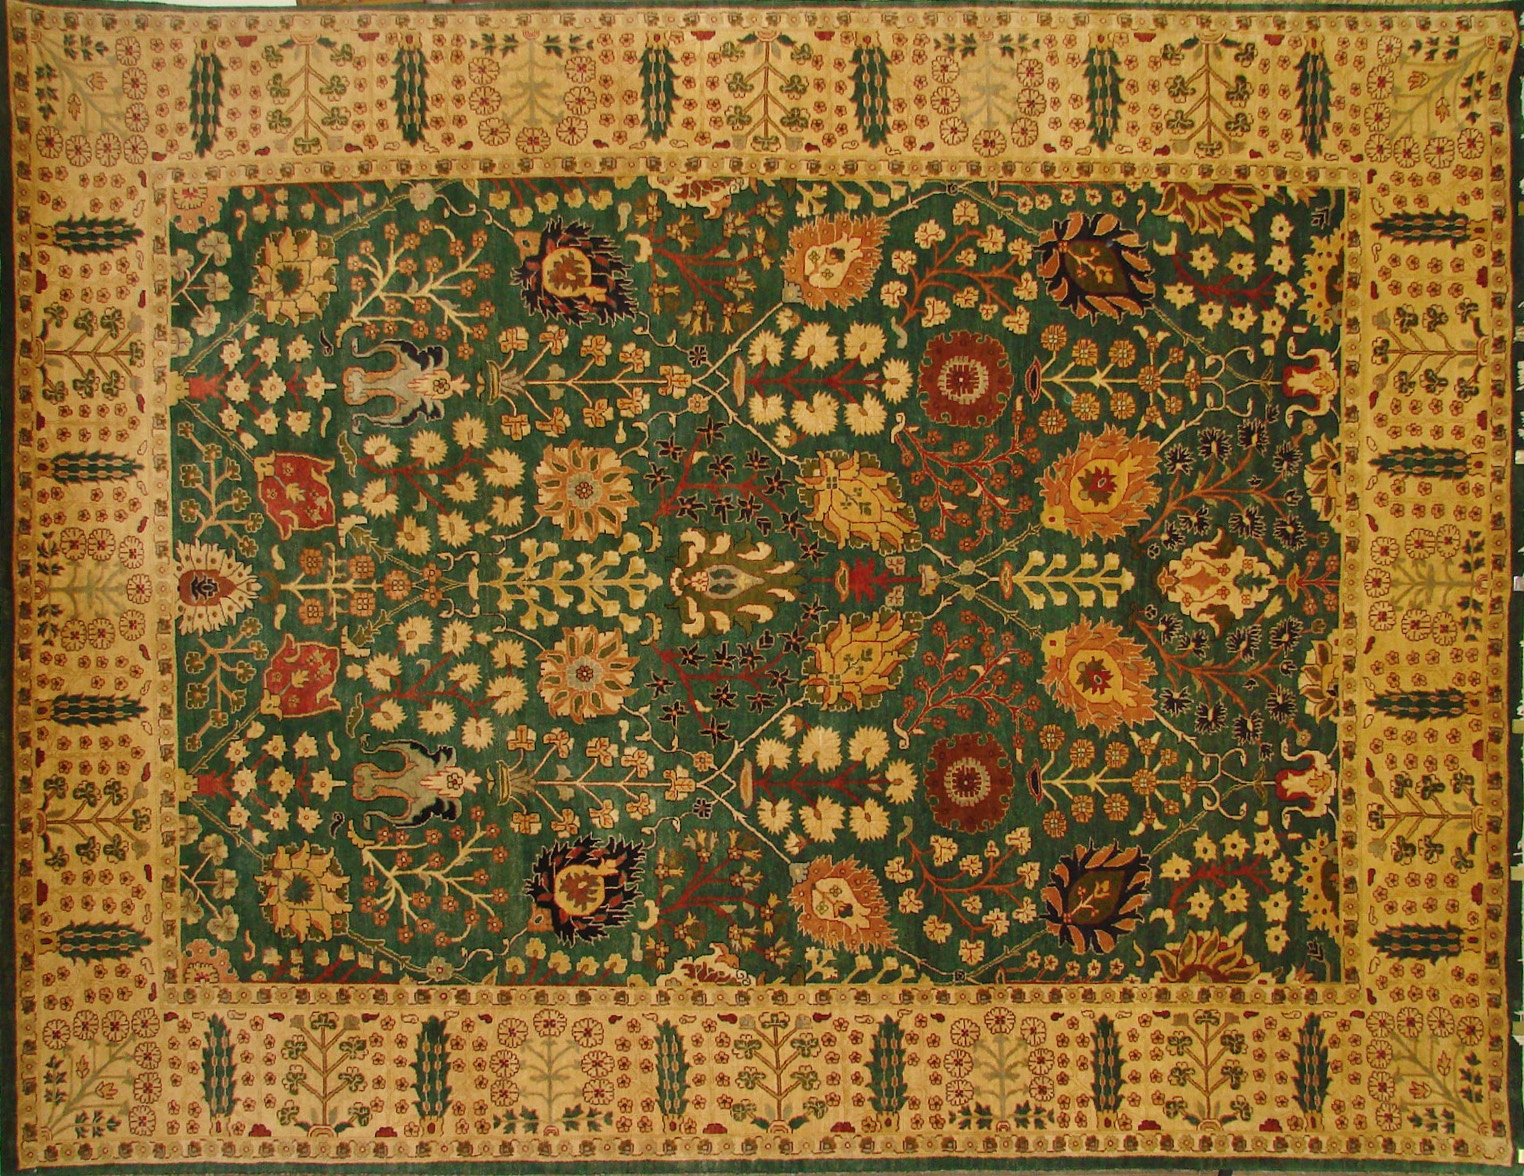 9x12 Traditional Hand Knotted Wool Area Rug - MR0335